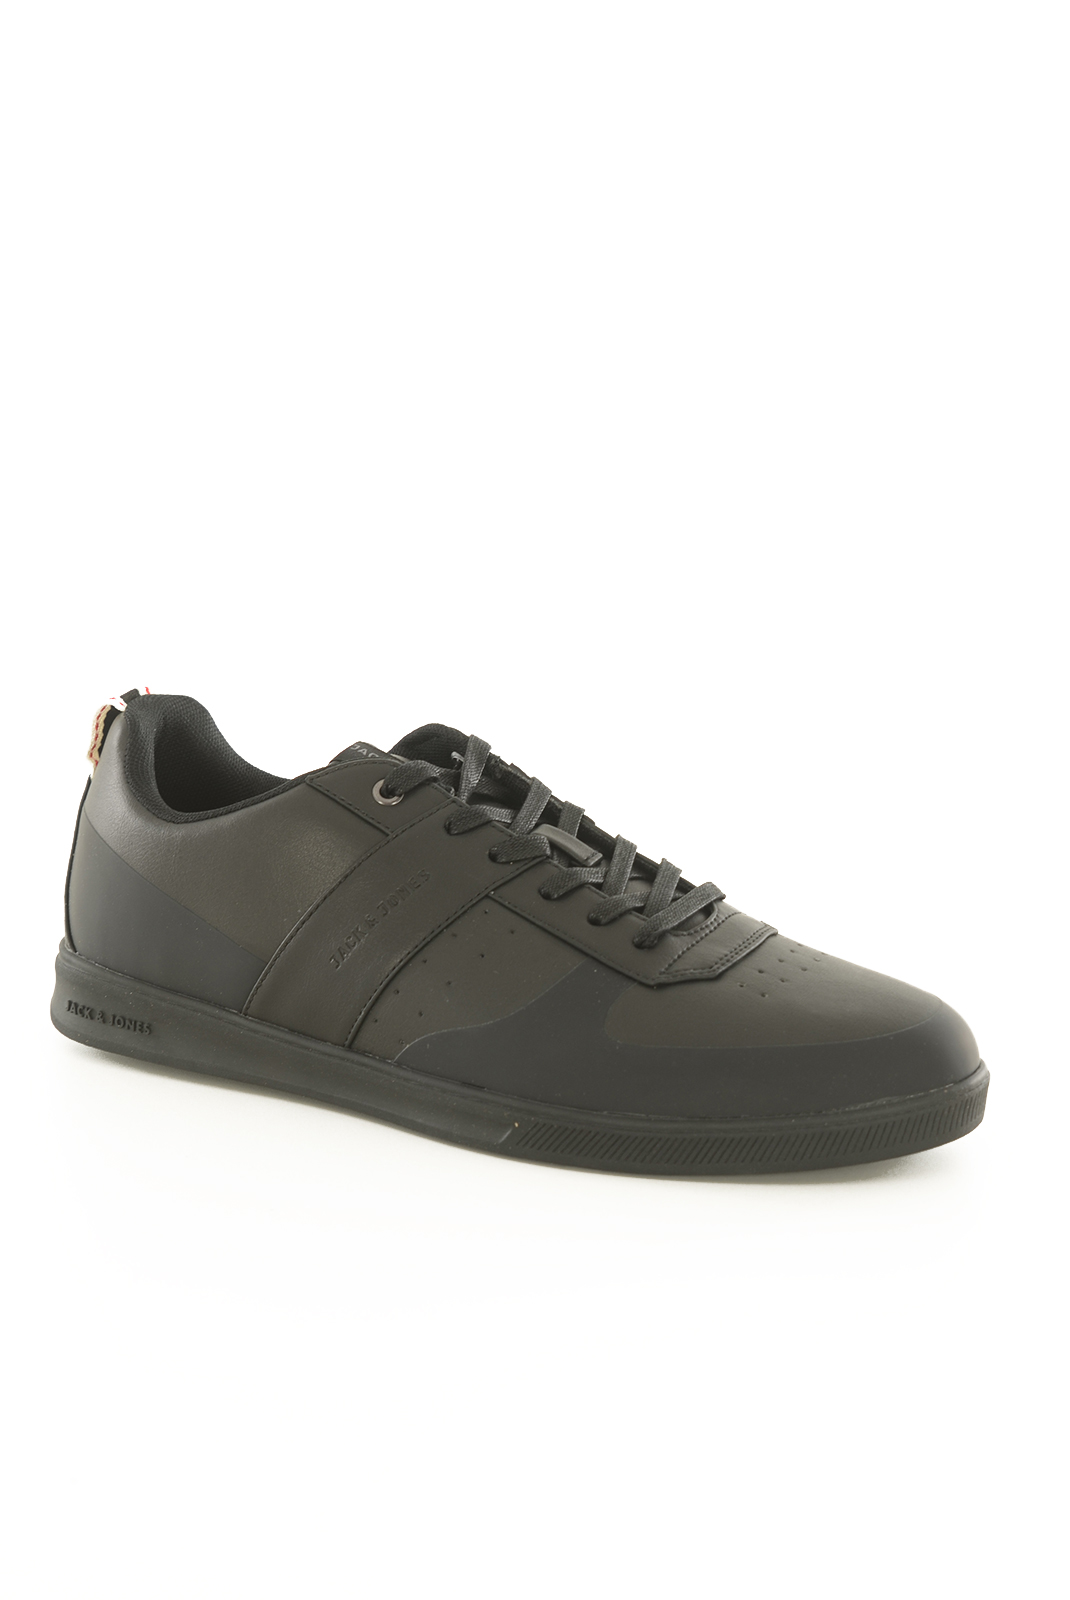 Chaussures   Jack & Jones KLEEN PU ANTHRACITE